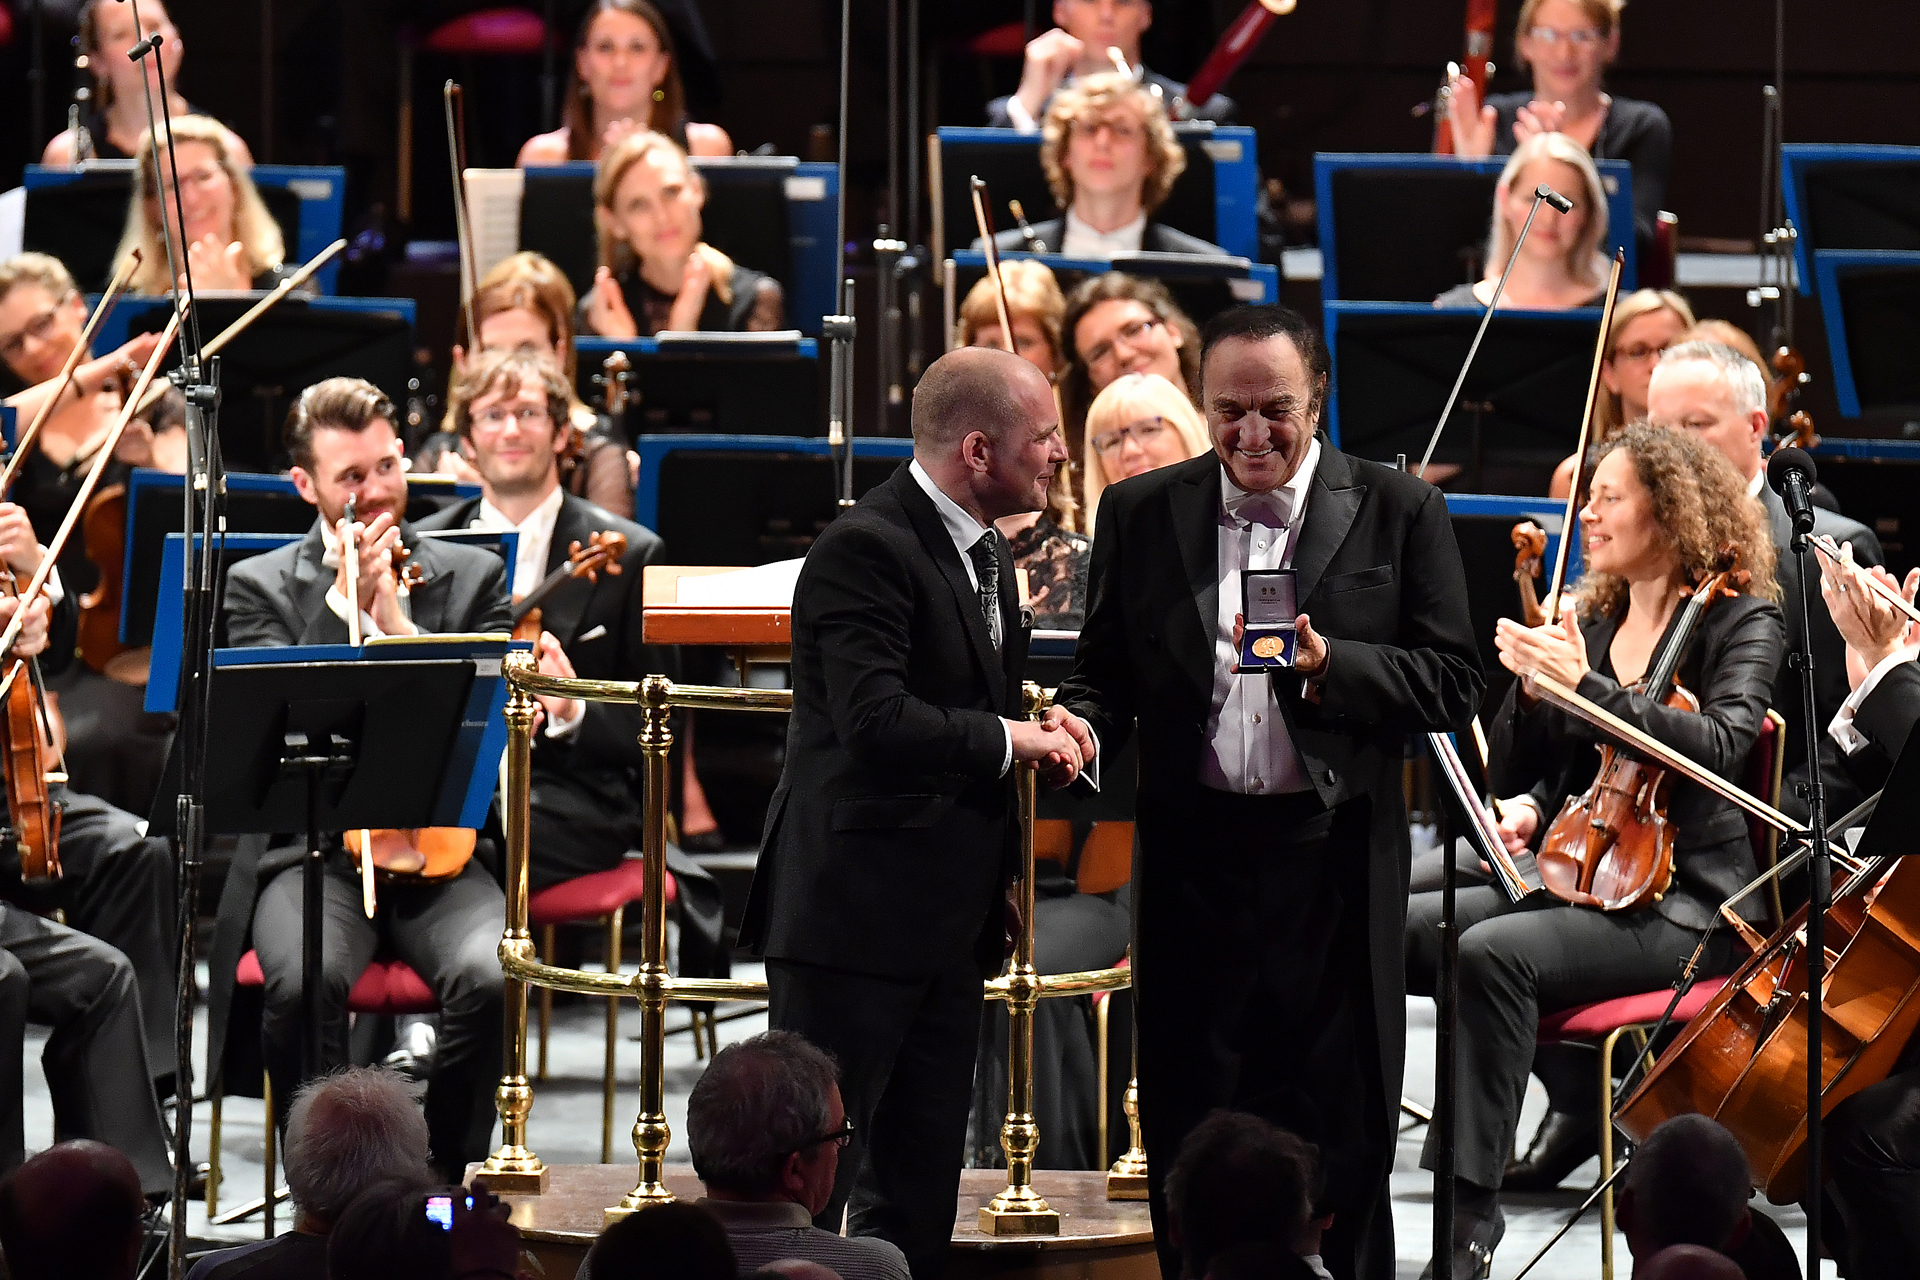 Conductor Charles Dutoit is presented with his Royal Philharmonic Society Gold Medal by John Gilhooly, RPS Chairman, during his BBC Proms concert with the Royal Philharmonic Orchestra on Thursday 17 August.  Featuring: Charles Dutoit, John Gilhooly Where: London, United Kingdom When: 17 Aug 2017 Credit: BBC/Chris Christodoulou/Supplied by WENN.com  **WENN does not claim any ownership including but not limited to Copyright, License in attached material. Fees charged by WENN are for WENN's services only, do not, nor are they intended to, convey to the user any ownership of Copyright, License in material. By publishing this material you expressly agree to indemnify, to hold WENN, its directors, shareholders, employees harmless from any loss, claims, damages, demands, expenses (including legal fees), any causes of action, allegation against WENN arising out of, connected in any way with publication of the material.**